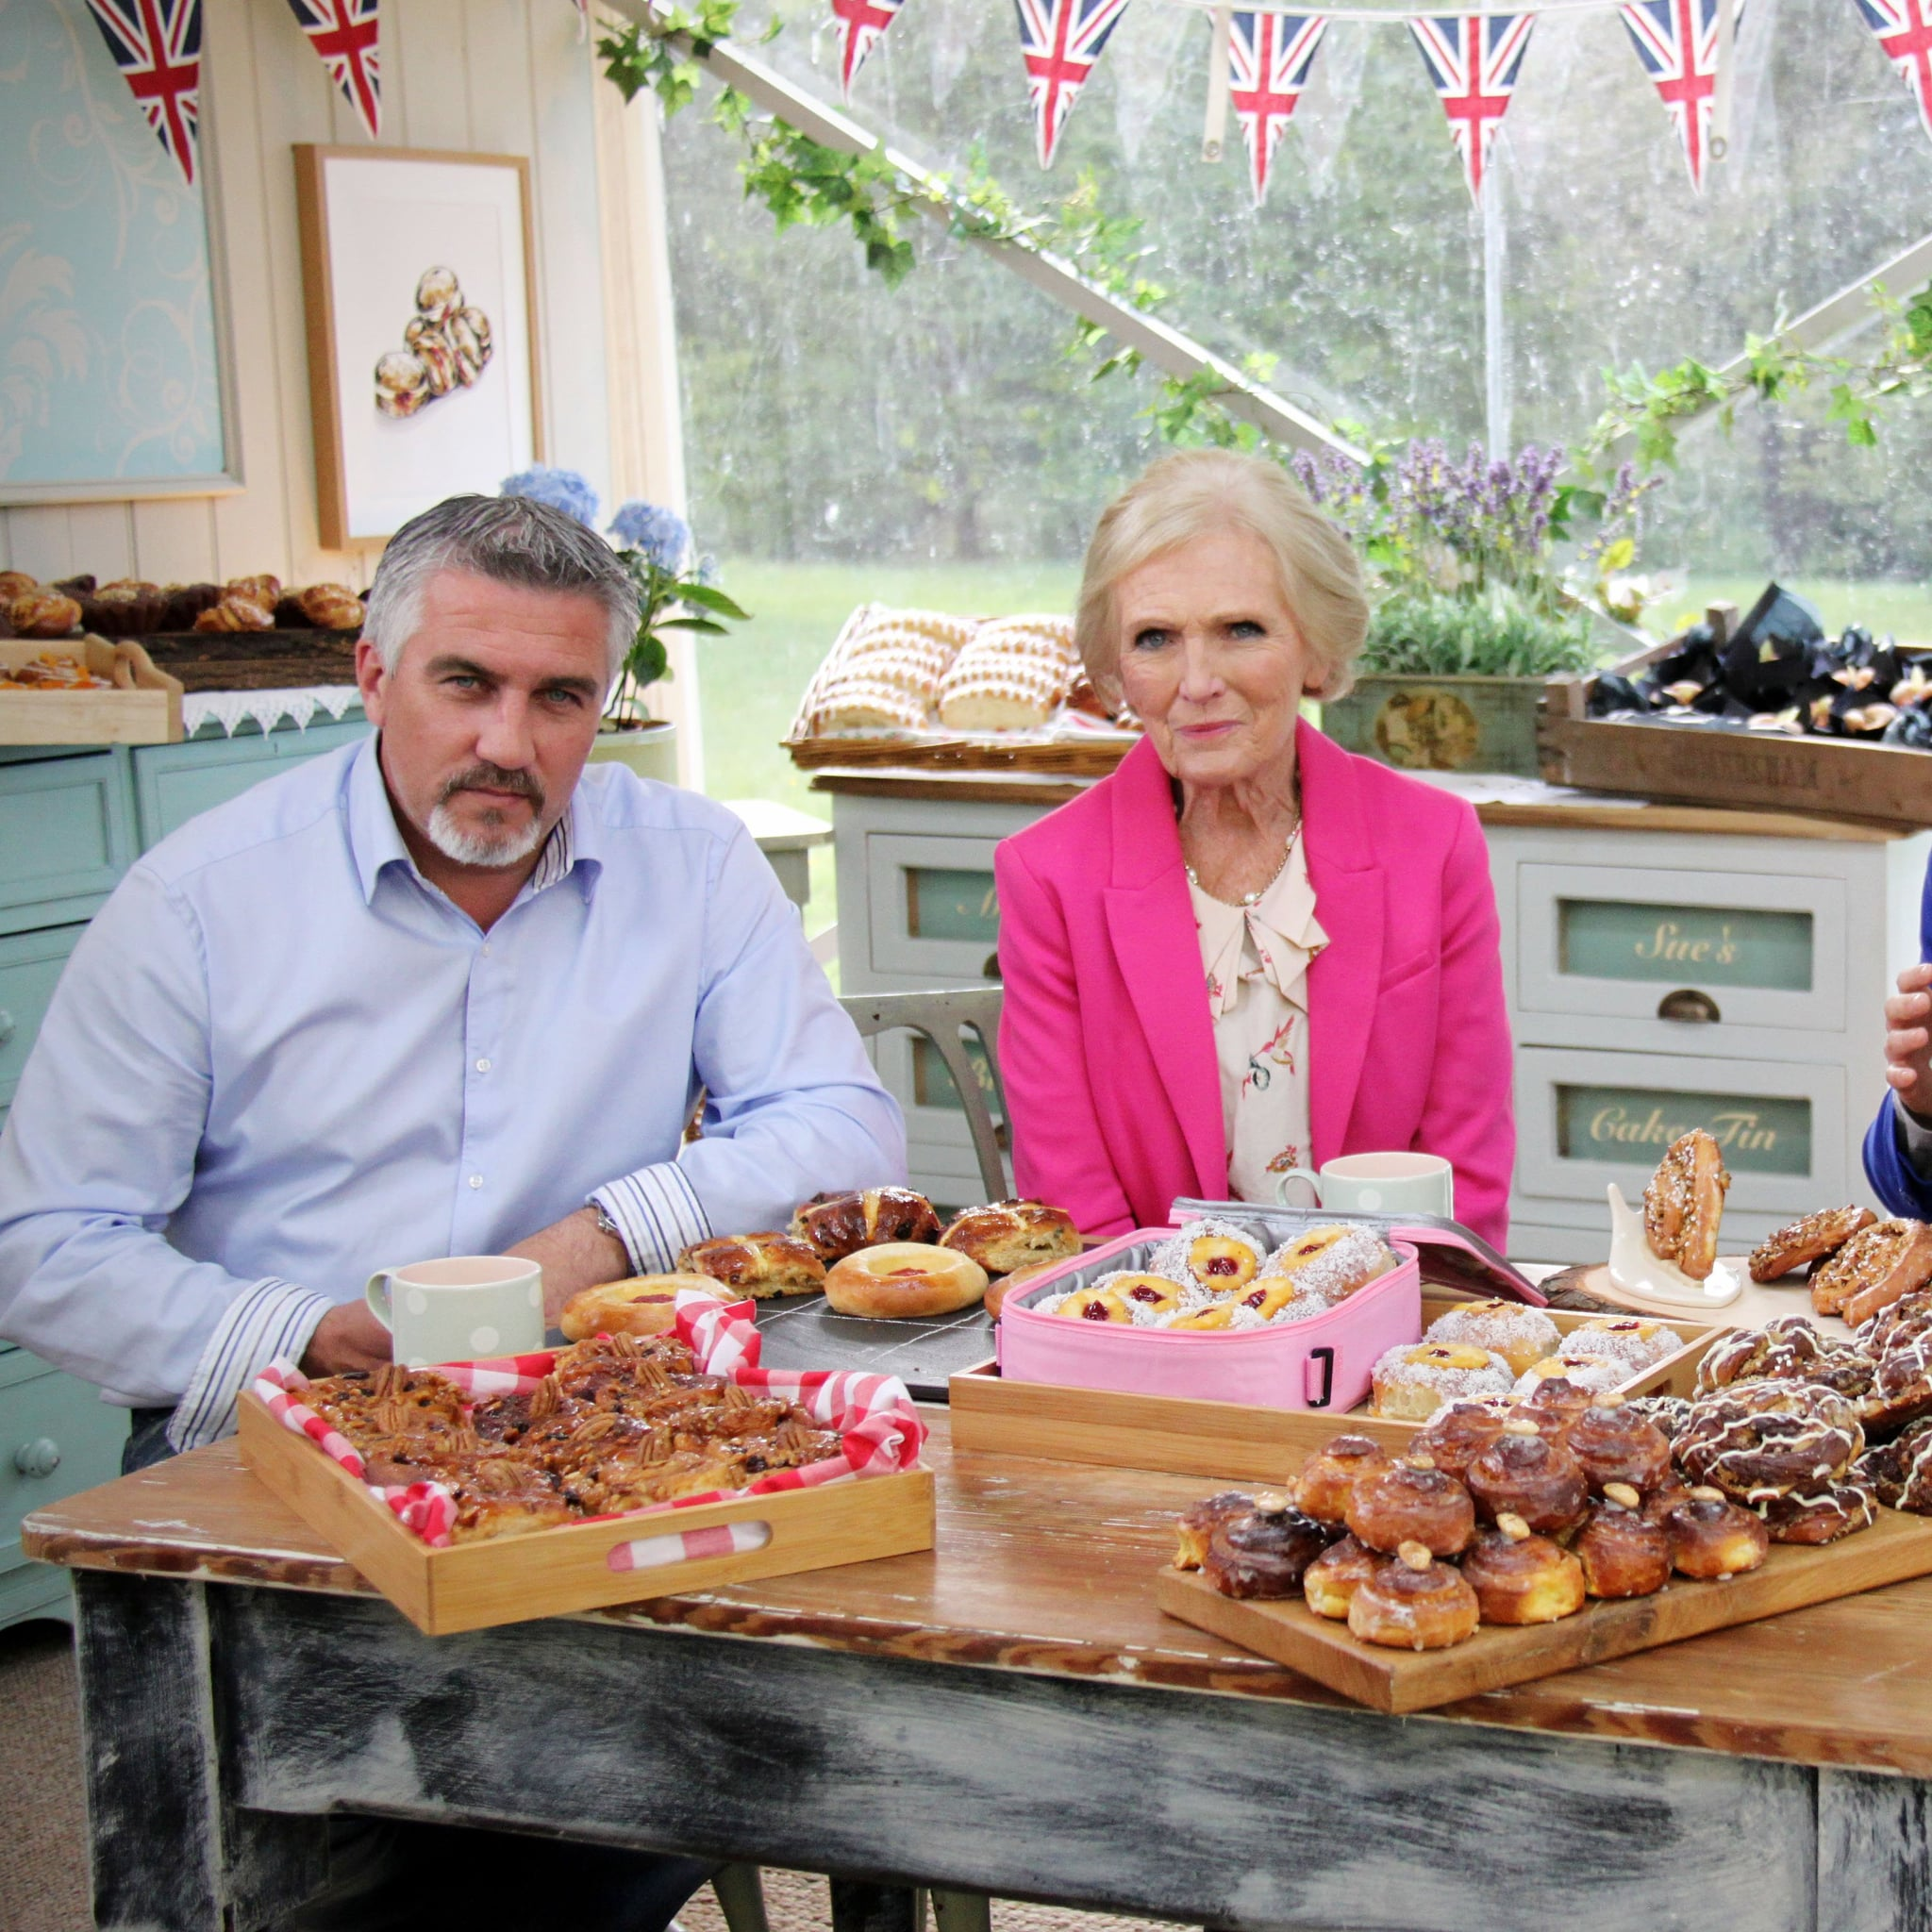 The Great British Bake Off: The Best Worst Bakes Ever